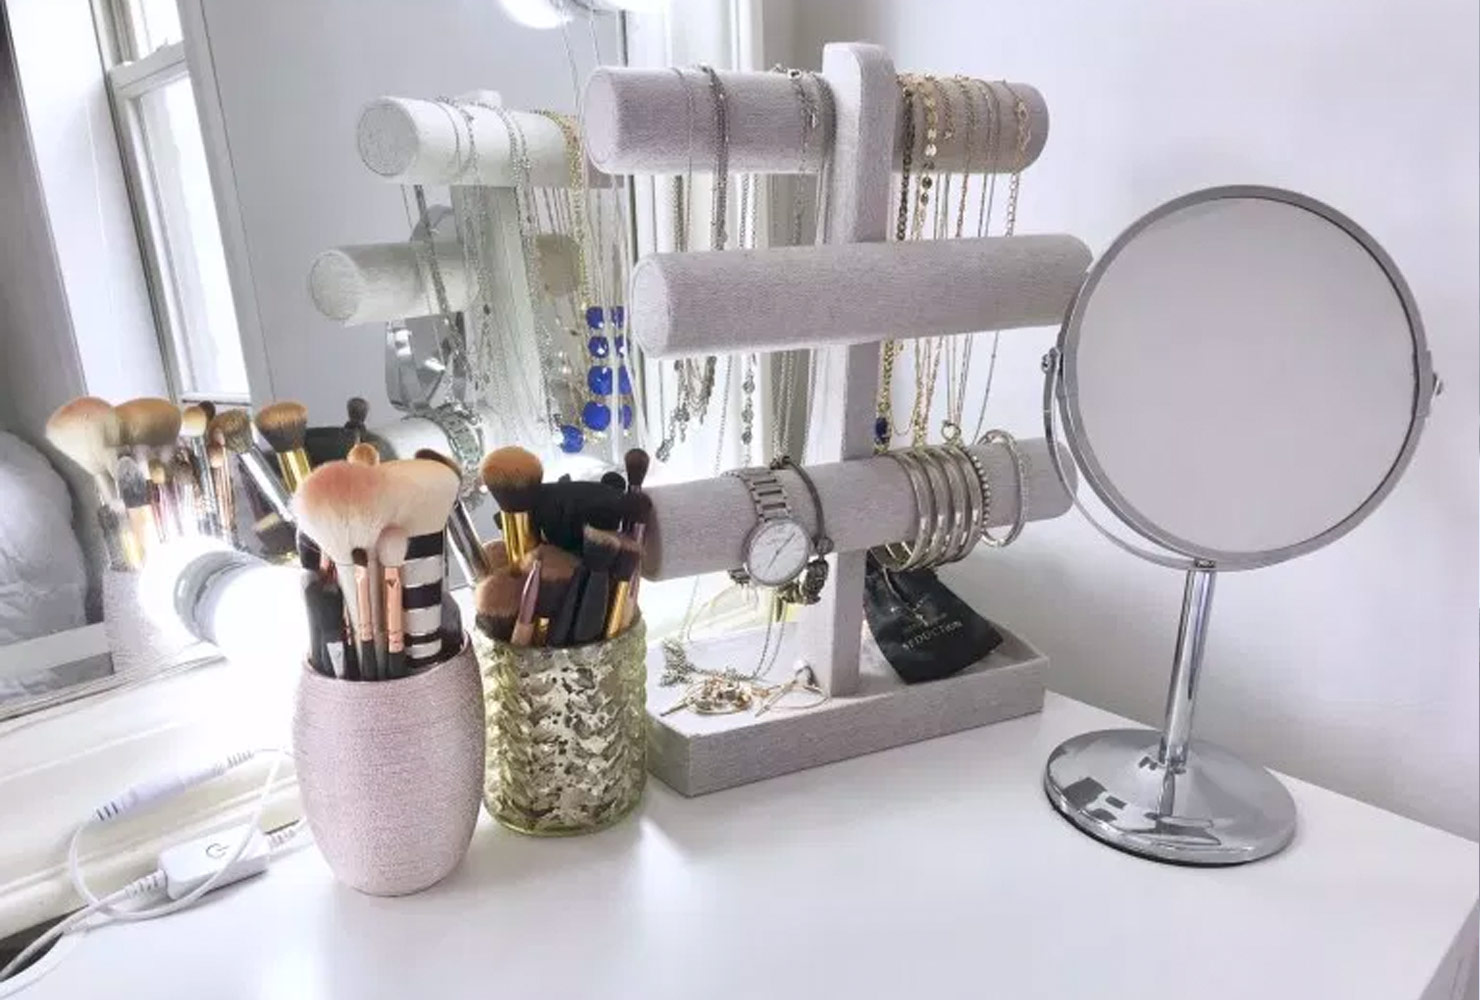 35 Makeup Room Ideas To Brighten Your Morning Routine ... on Makeup Room Ideas  id=66246